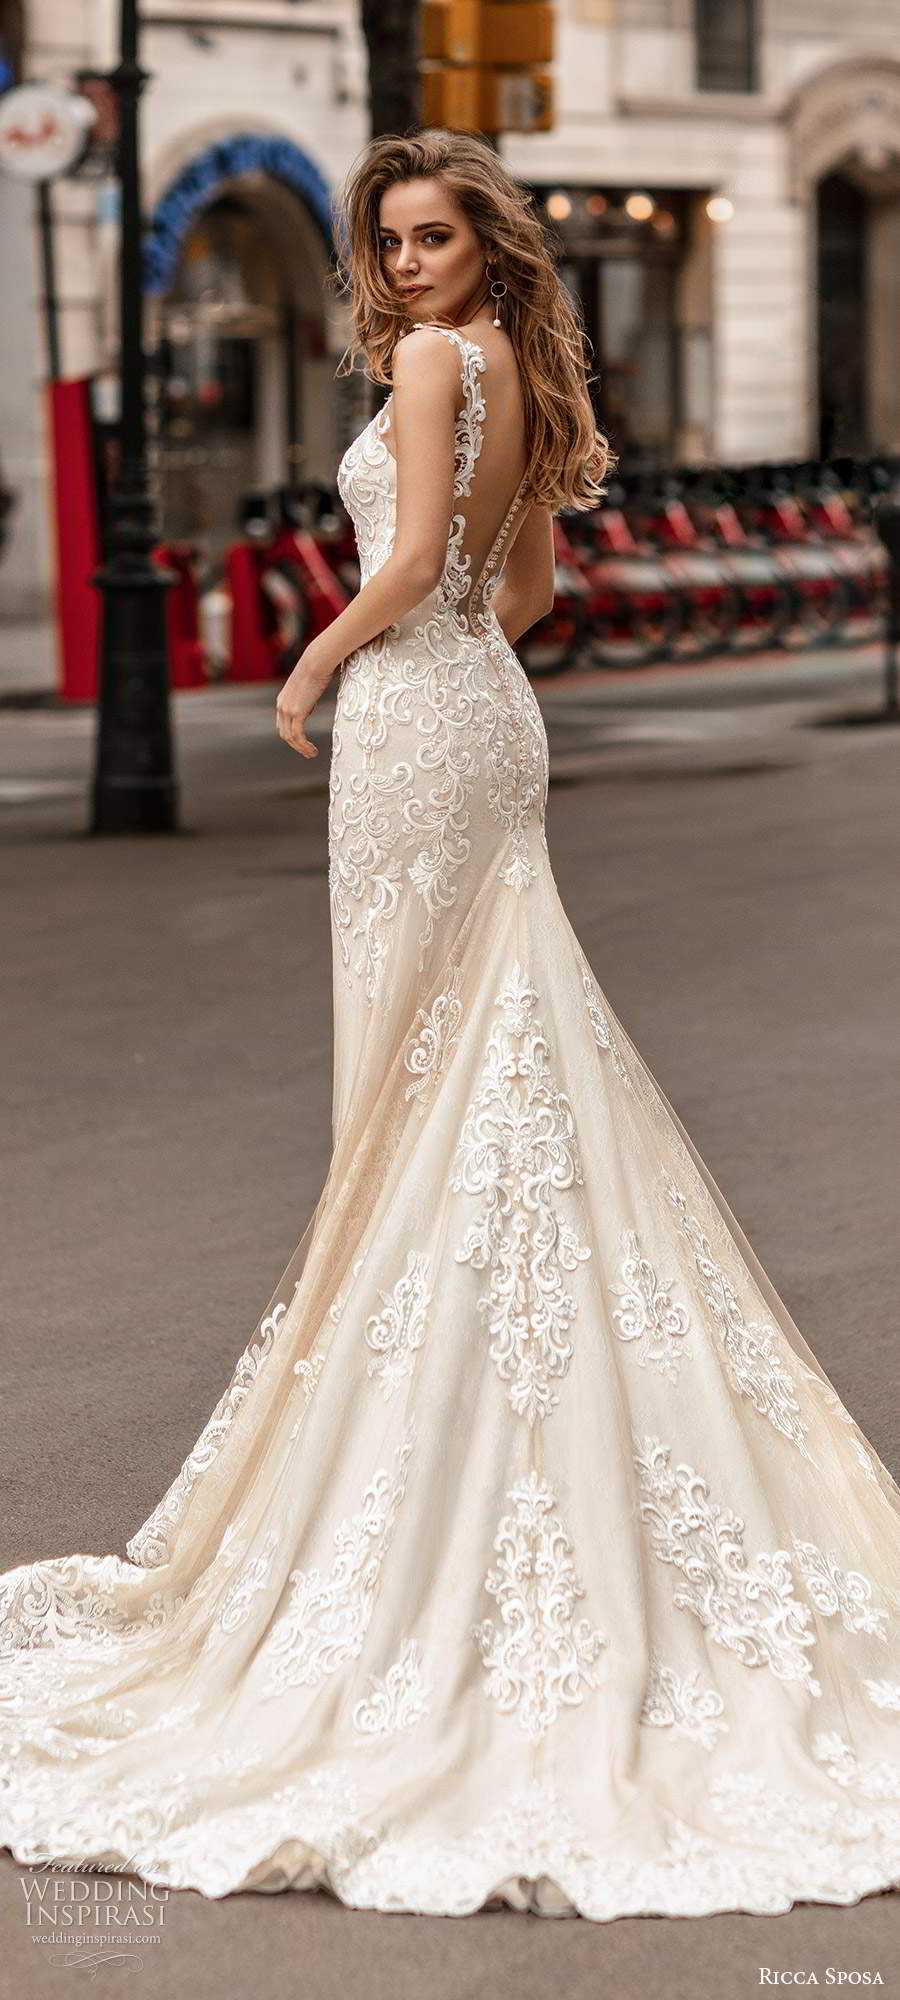 ricca sposa 2020 barcelona bridal illusion cap sleeves plunging v neckline fully embellished lace fit flare mermaid sheath wedding dress illusion low back chapel train (3) bv